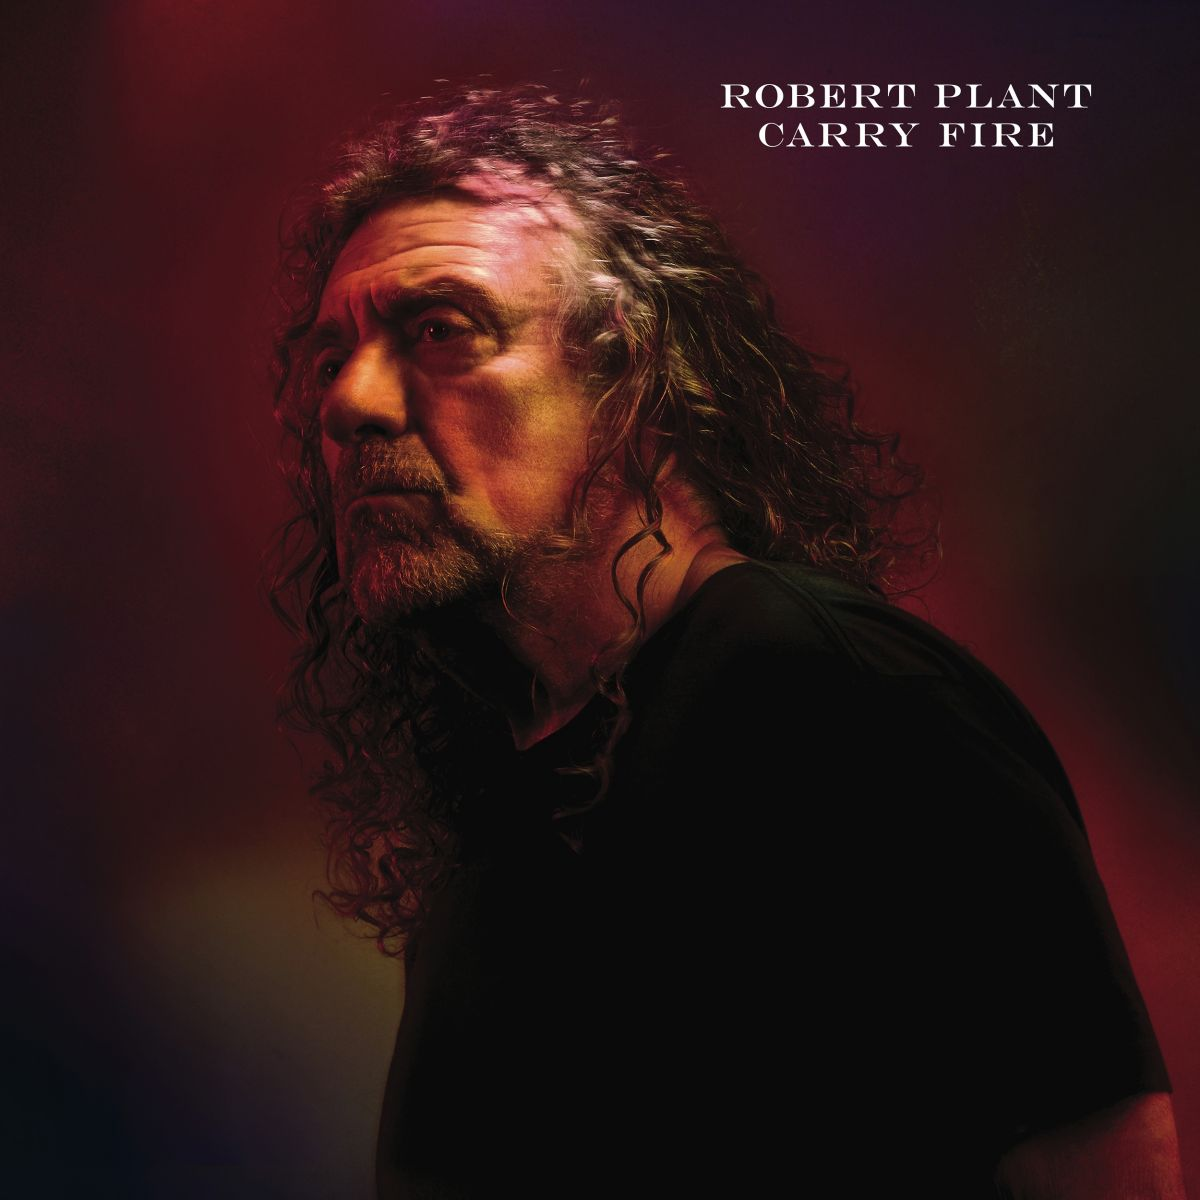 Robert Plant to play at The Colston Hall in Bristol